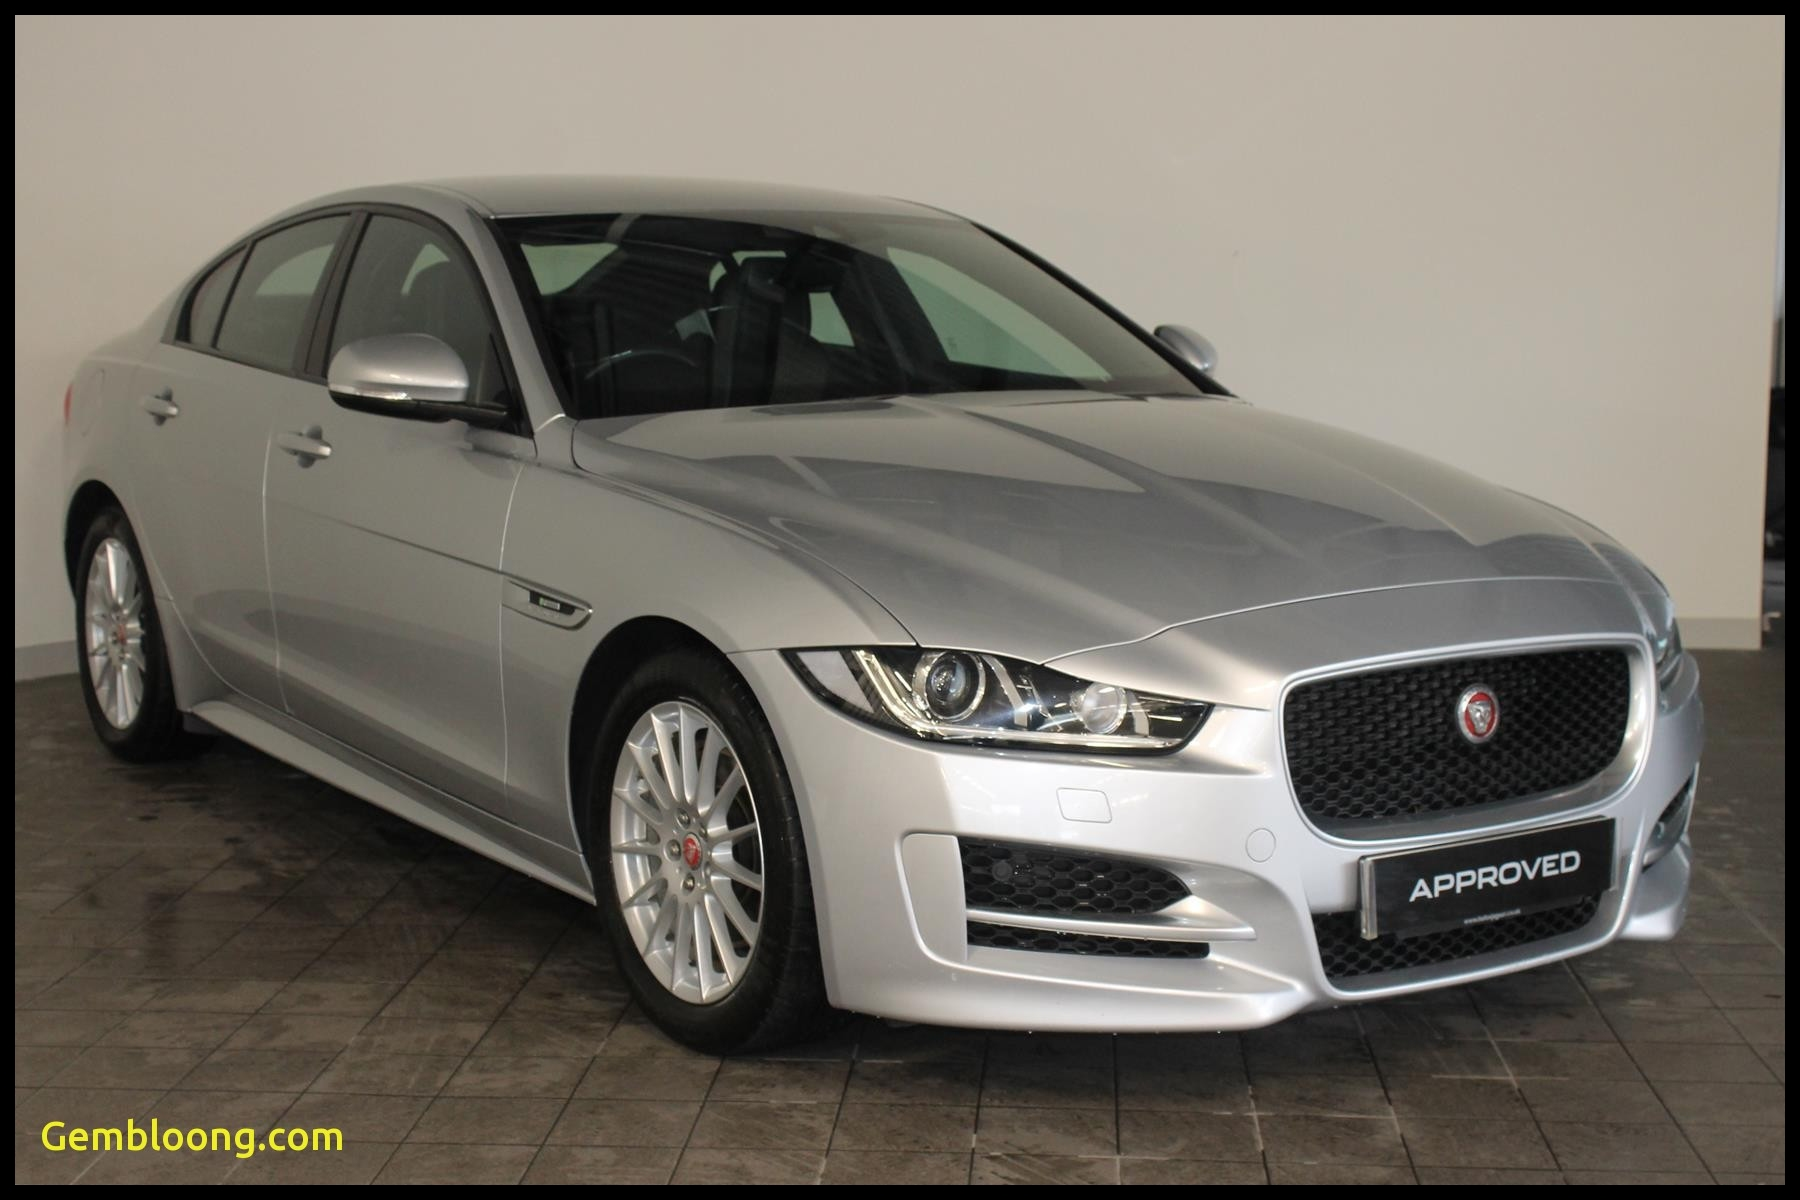 Used Cars Cleveland Lovely Cars for Sale Near Me Leeds Inspirational Used 2016 Jaguar Xe 2